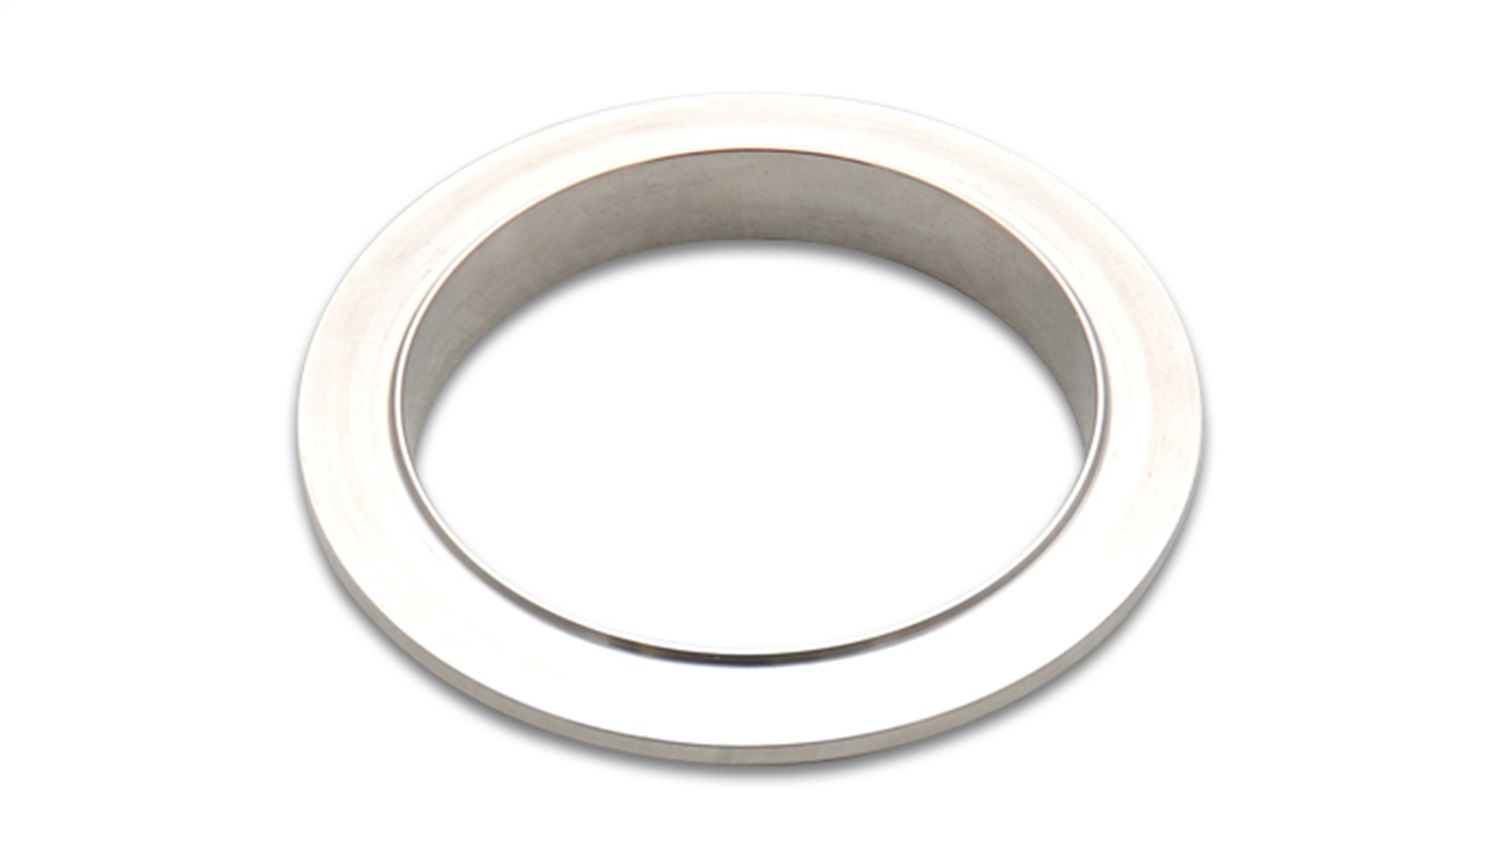 Vibrant Performance 1491M Stainless Steel V-Band Clamp ...